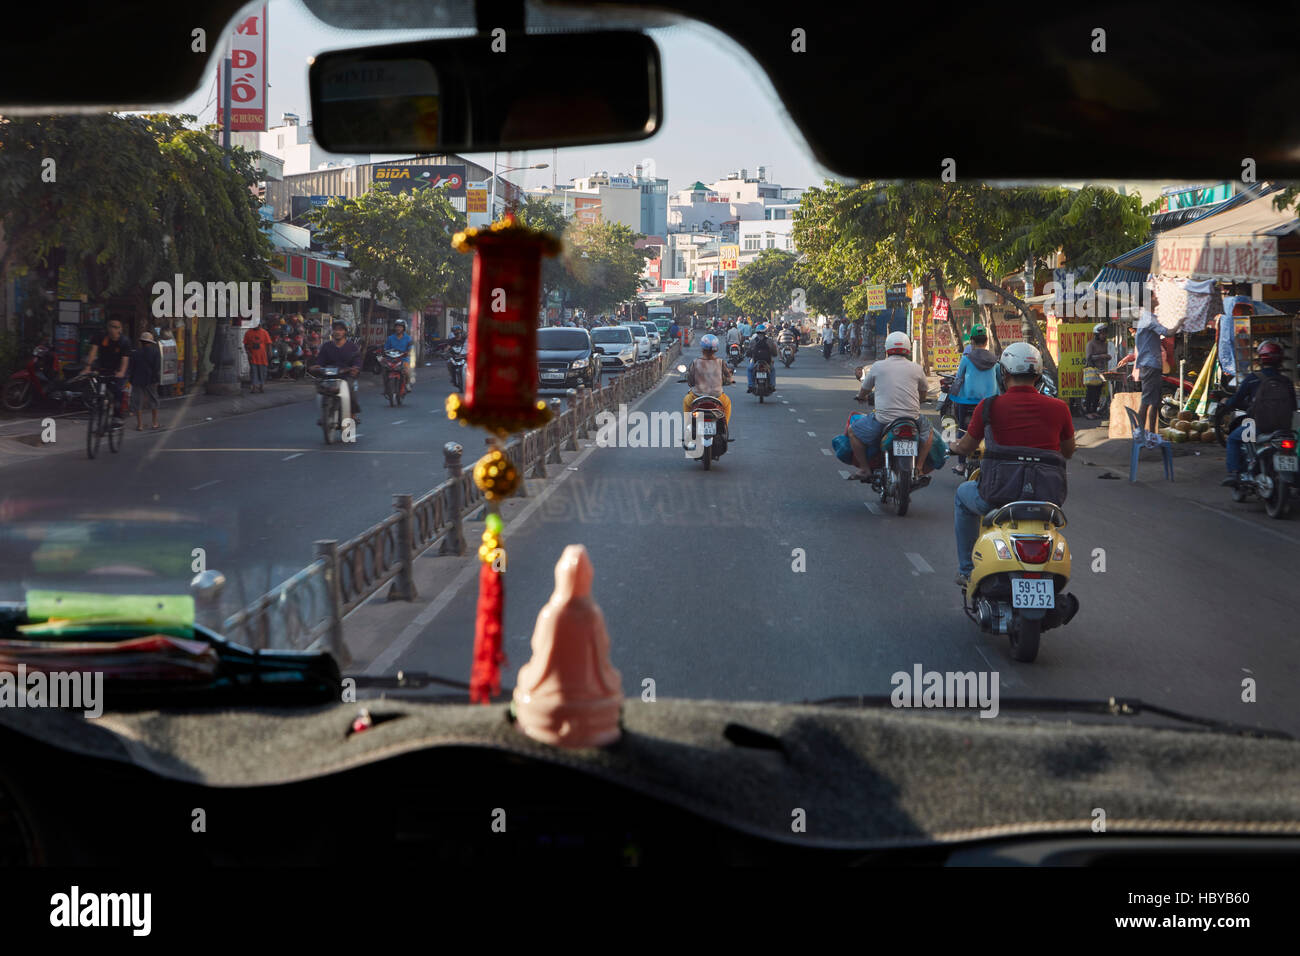 Motorcycles on busy street, Ho Chi Minh City (Saigon), Vietnam - Stock Image